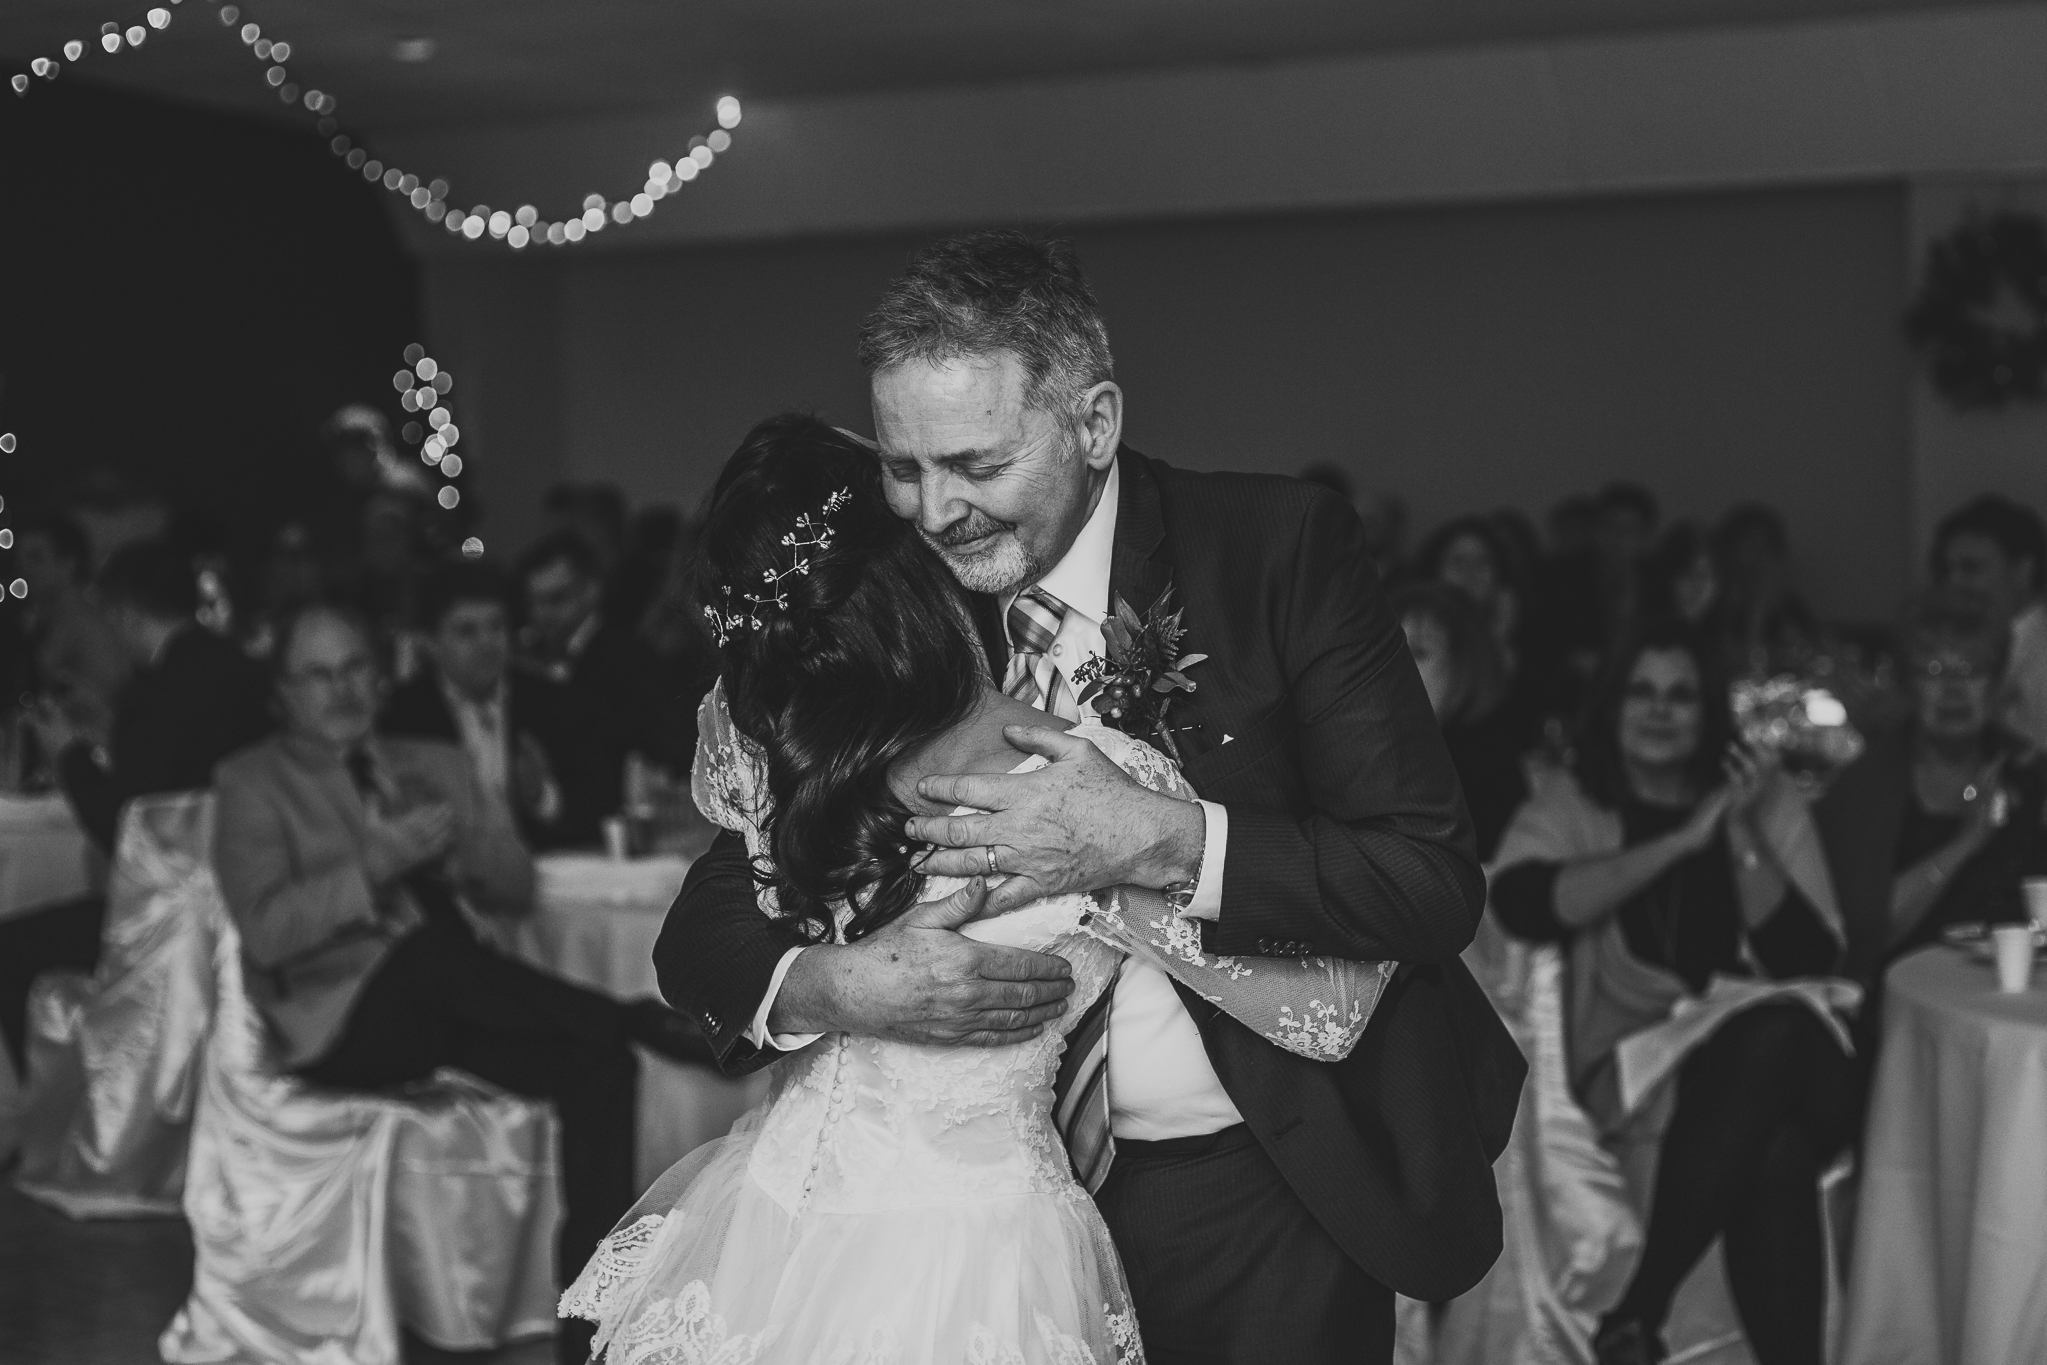 A proud dad dances with his daughter